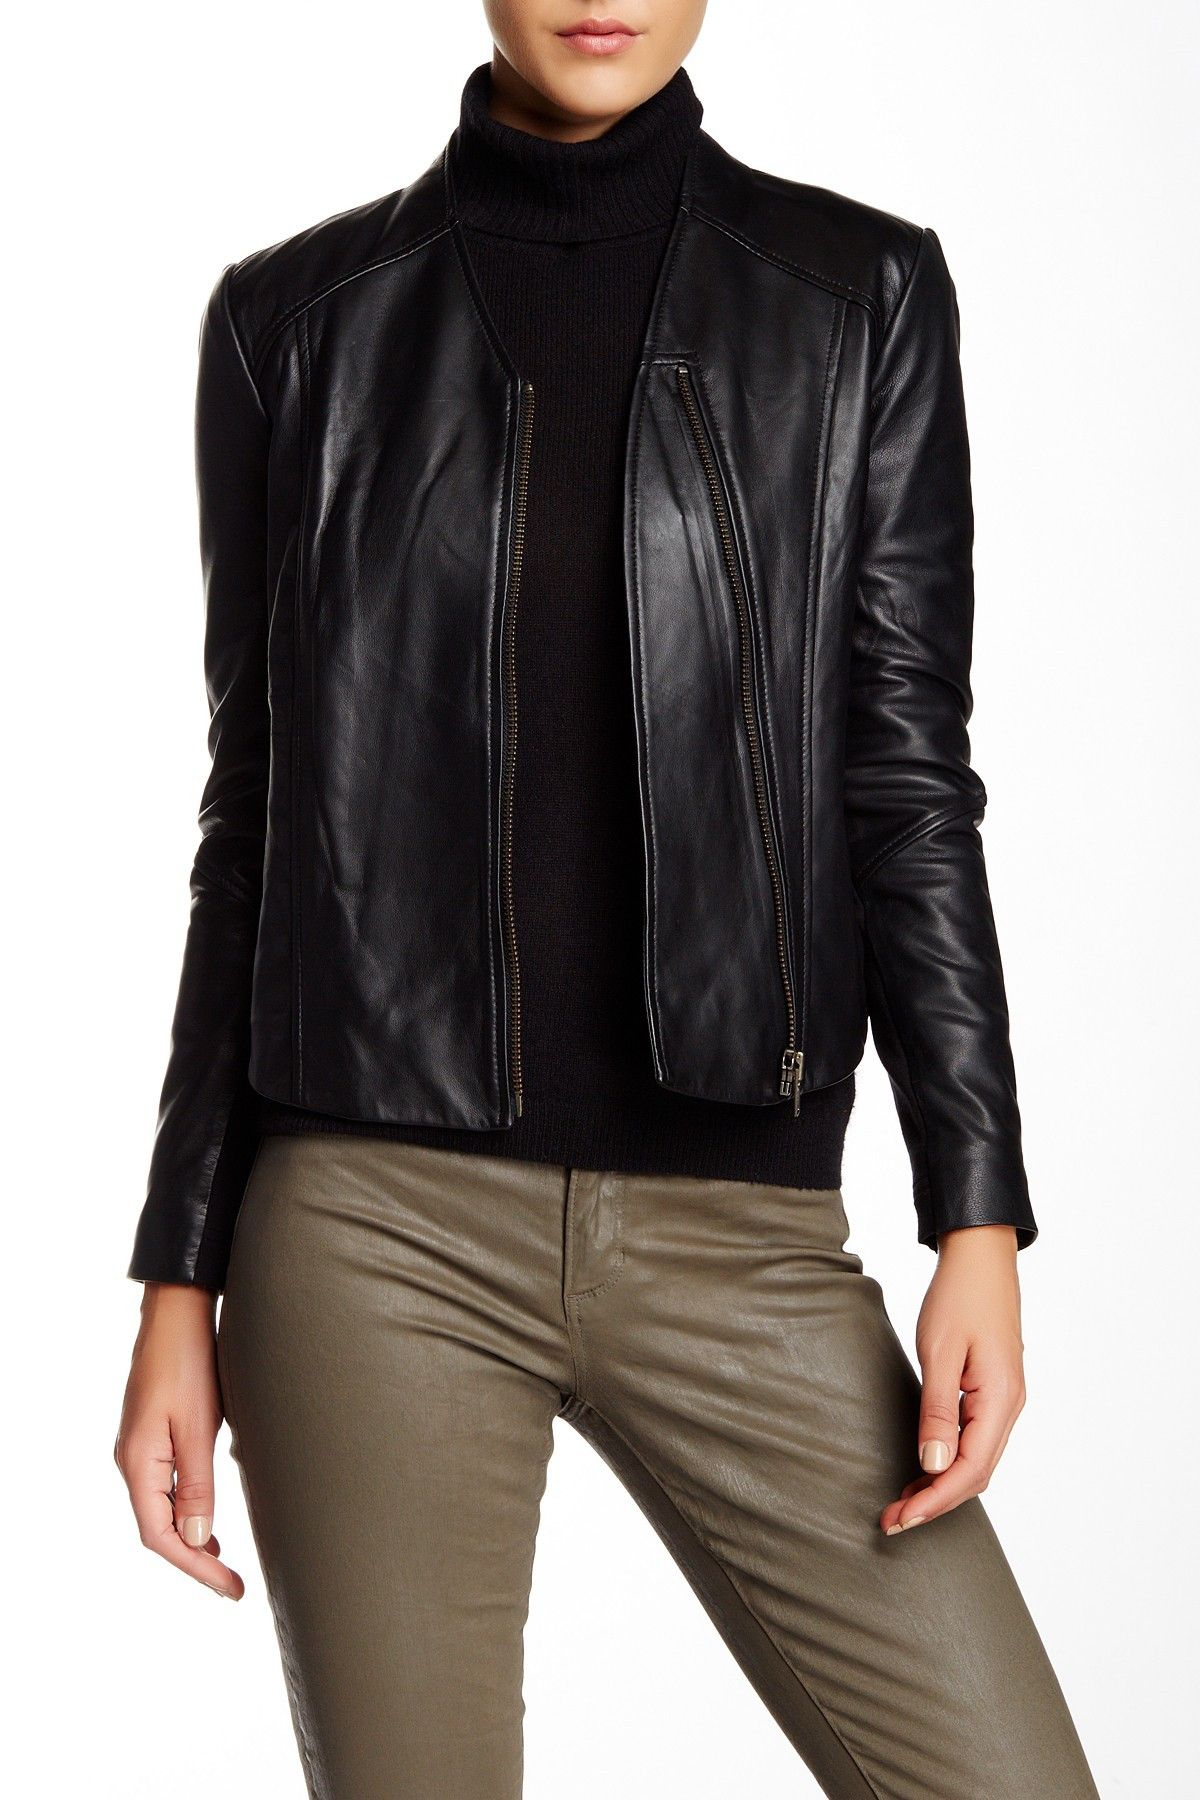 W118 by Walter Baker Kimberly Leather Jacket HauteLook